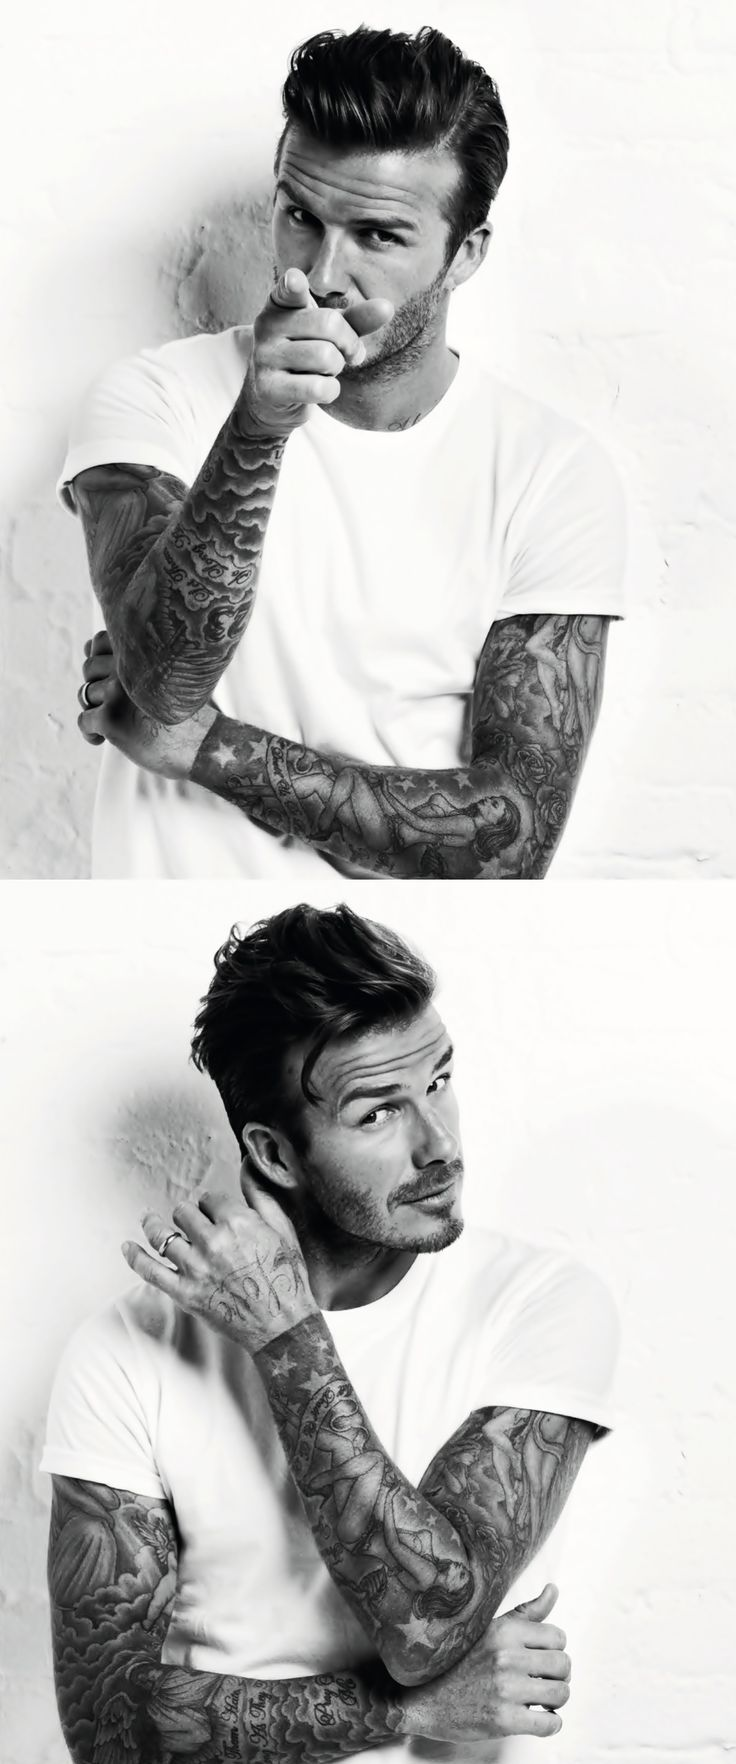 David Beckham, somebody for fathers and young folk to look up too.